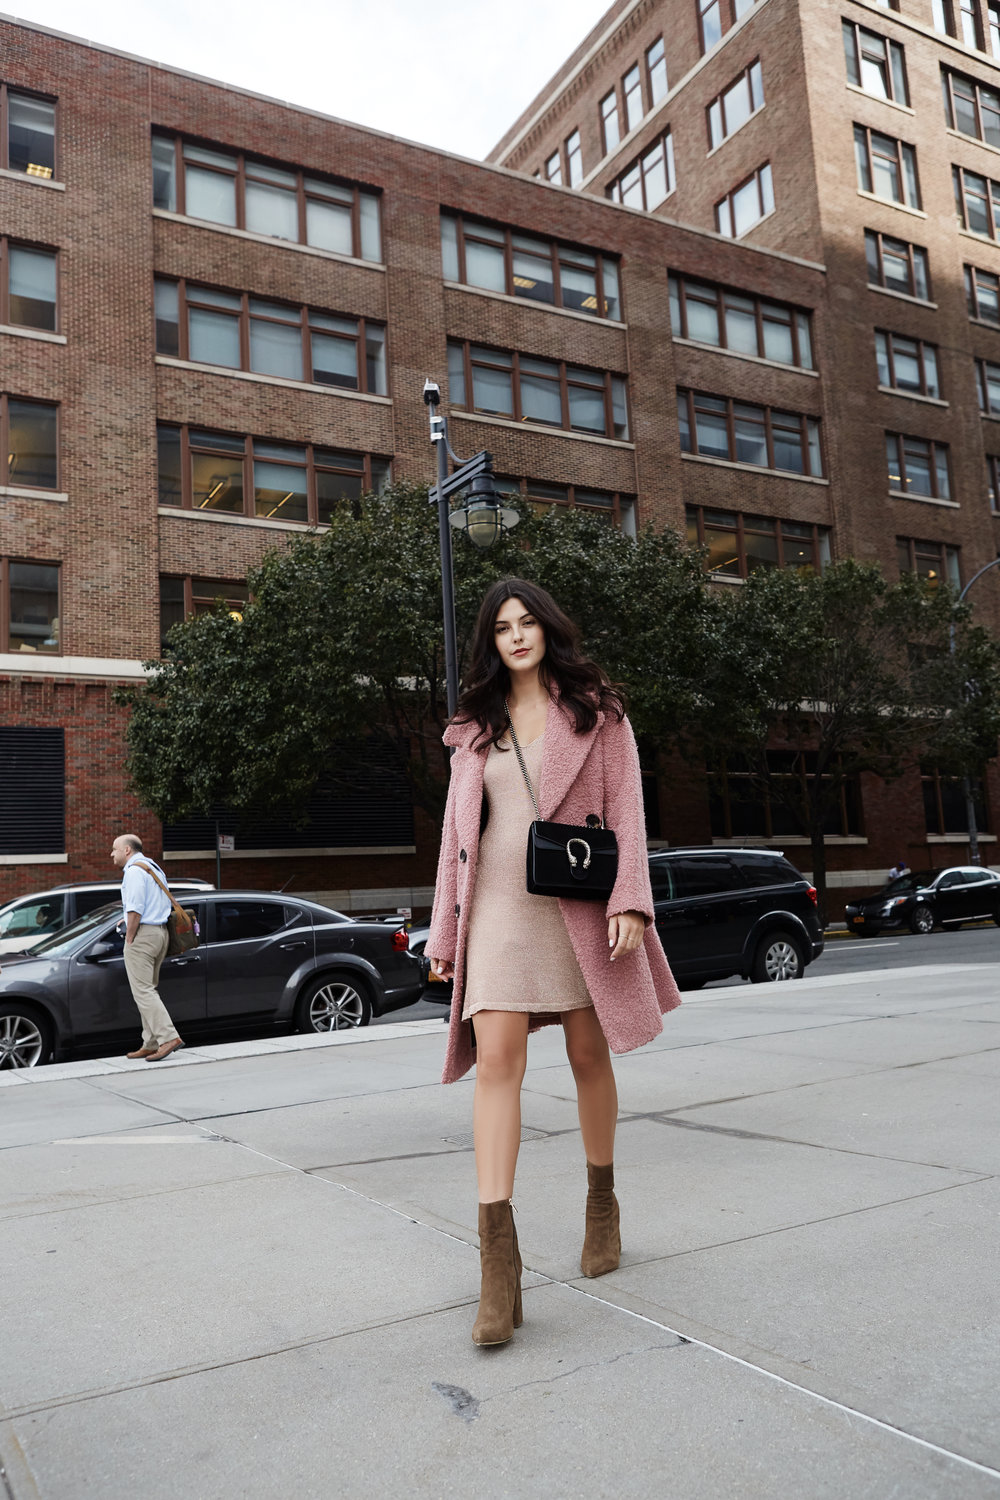 NYFW Recap #2 Julia Friedman, wearing topshop pink fuzzy oversized coat, metallic dress, Raye the Label boots, and a Gucci Dionysus in black suede.